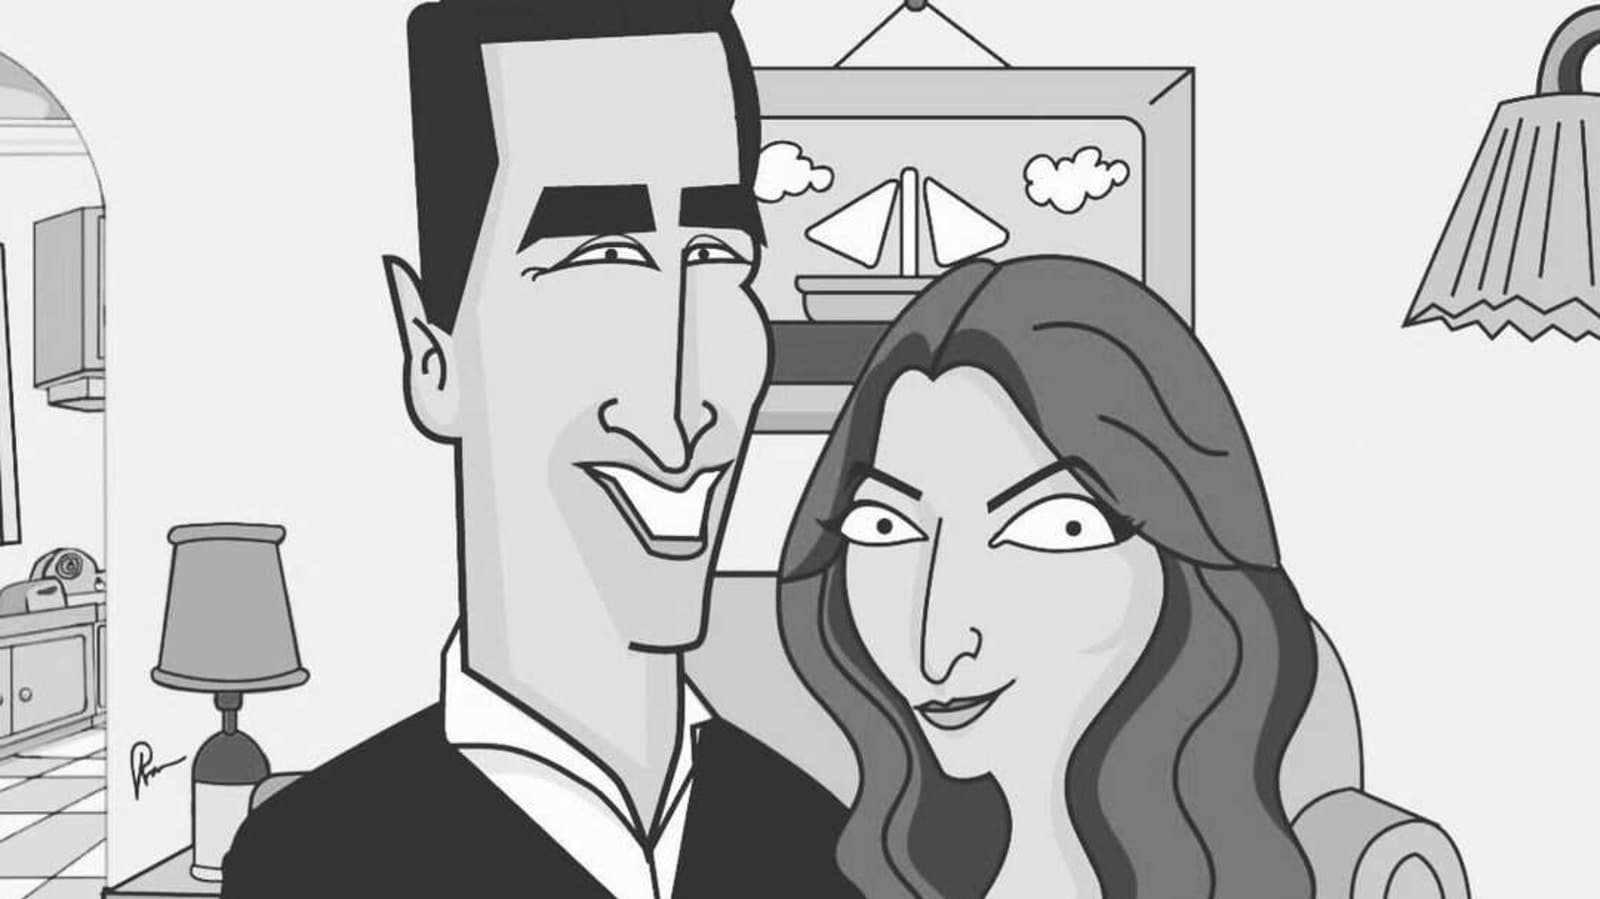 Twinkle Khanna shares adorable caricature as Akshay Kumar tests negative for Covid-19: 'Good to have him back around'